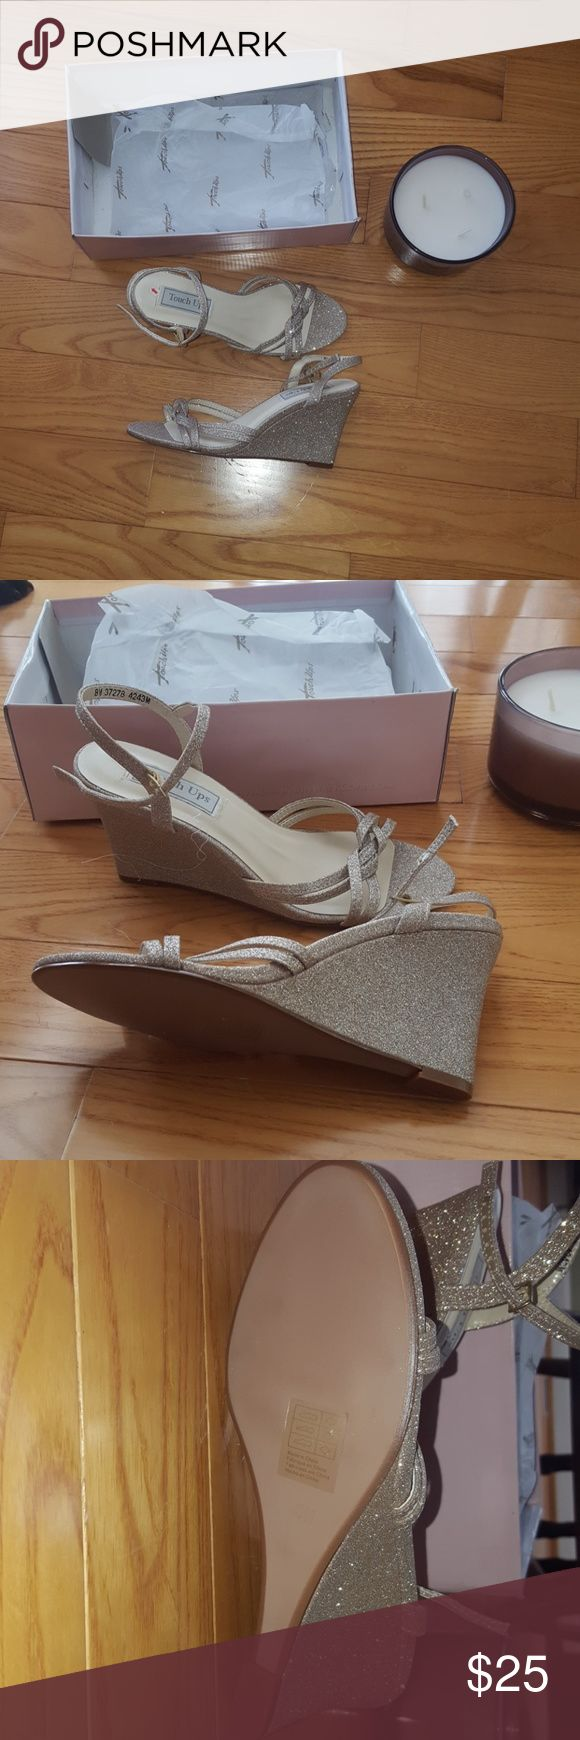 Touch up wedding wedge sandals size 8 Never worn! Brand new. Ended up in flats for my wedding :-) Touch Ups Shoes Wedges